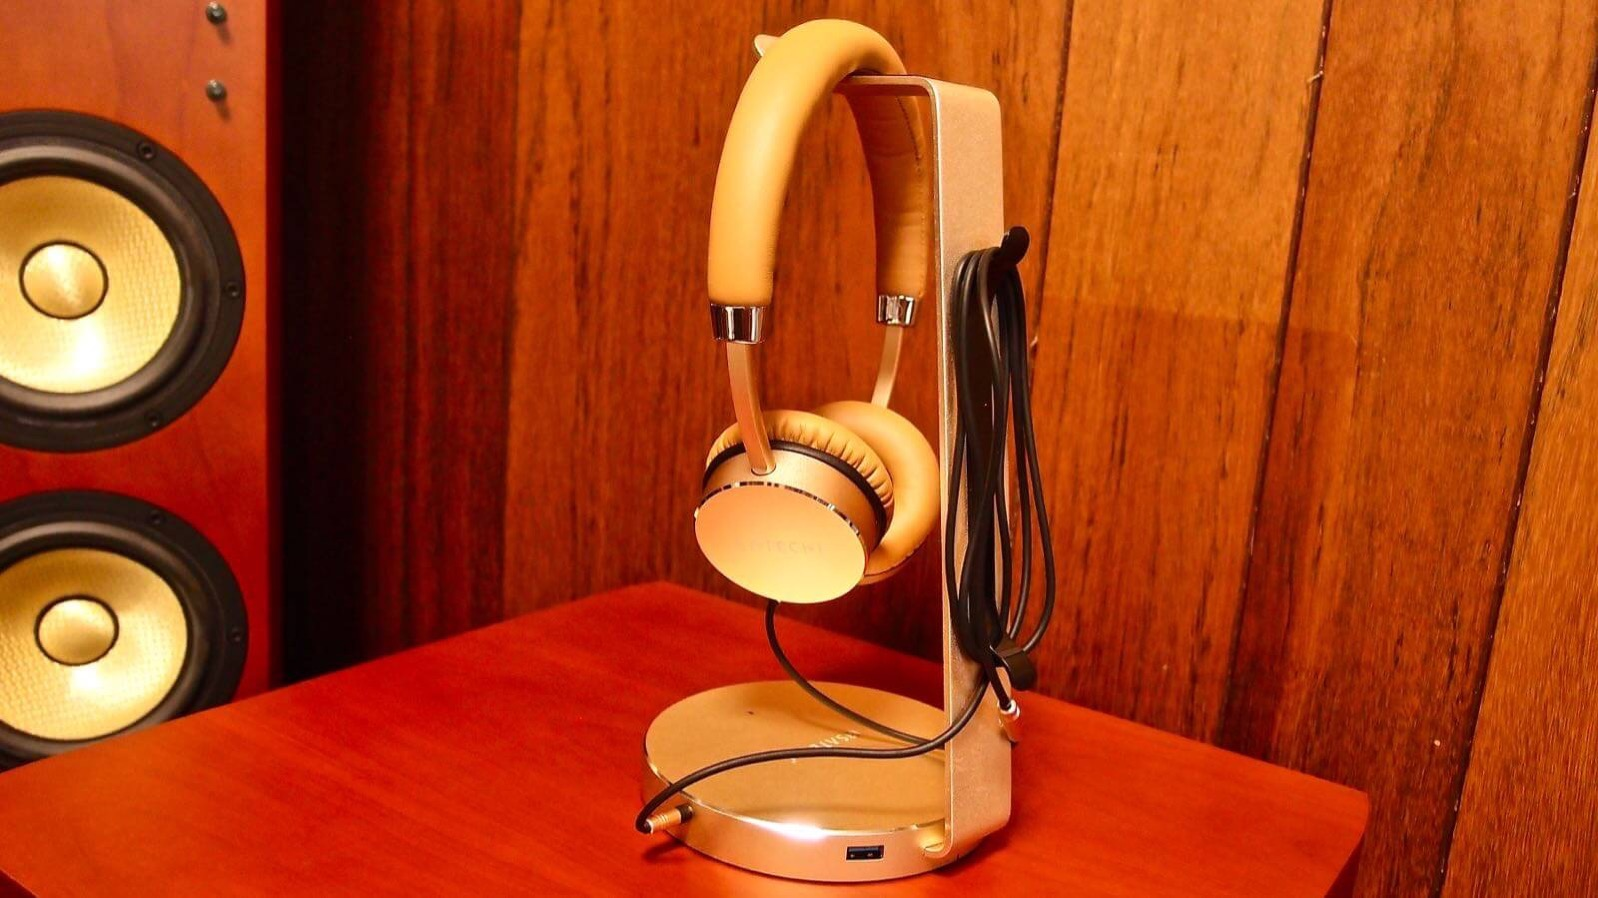 0160 Satechi s Headphone Stand Review 10